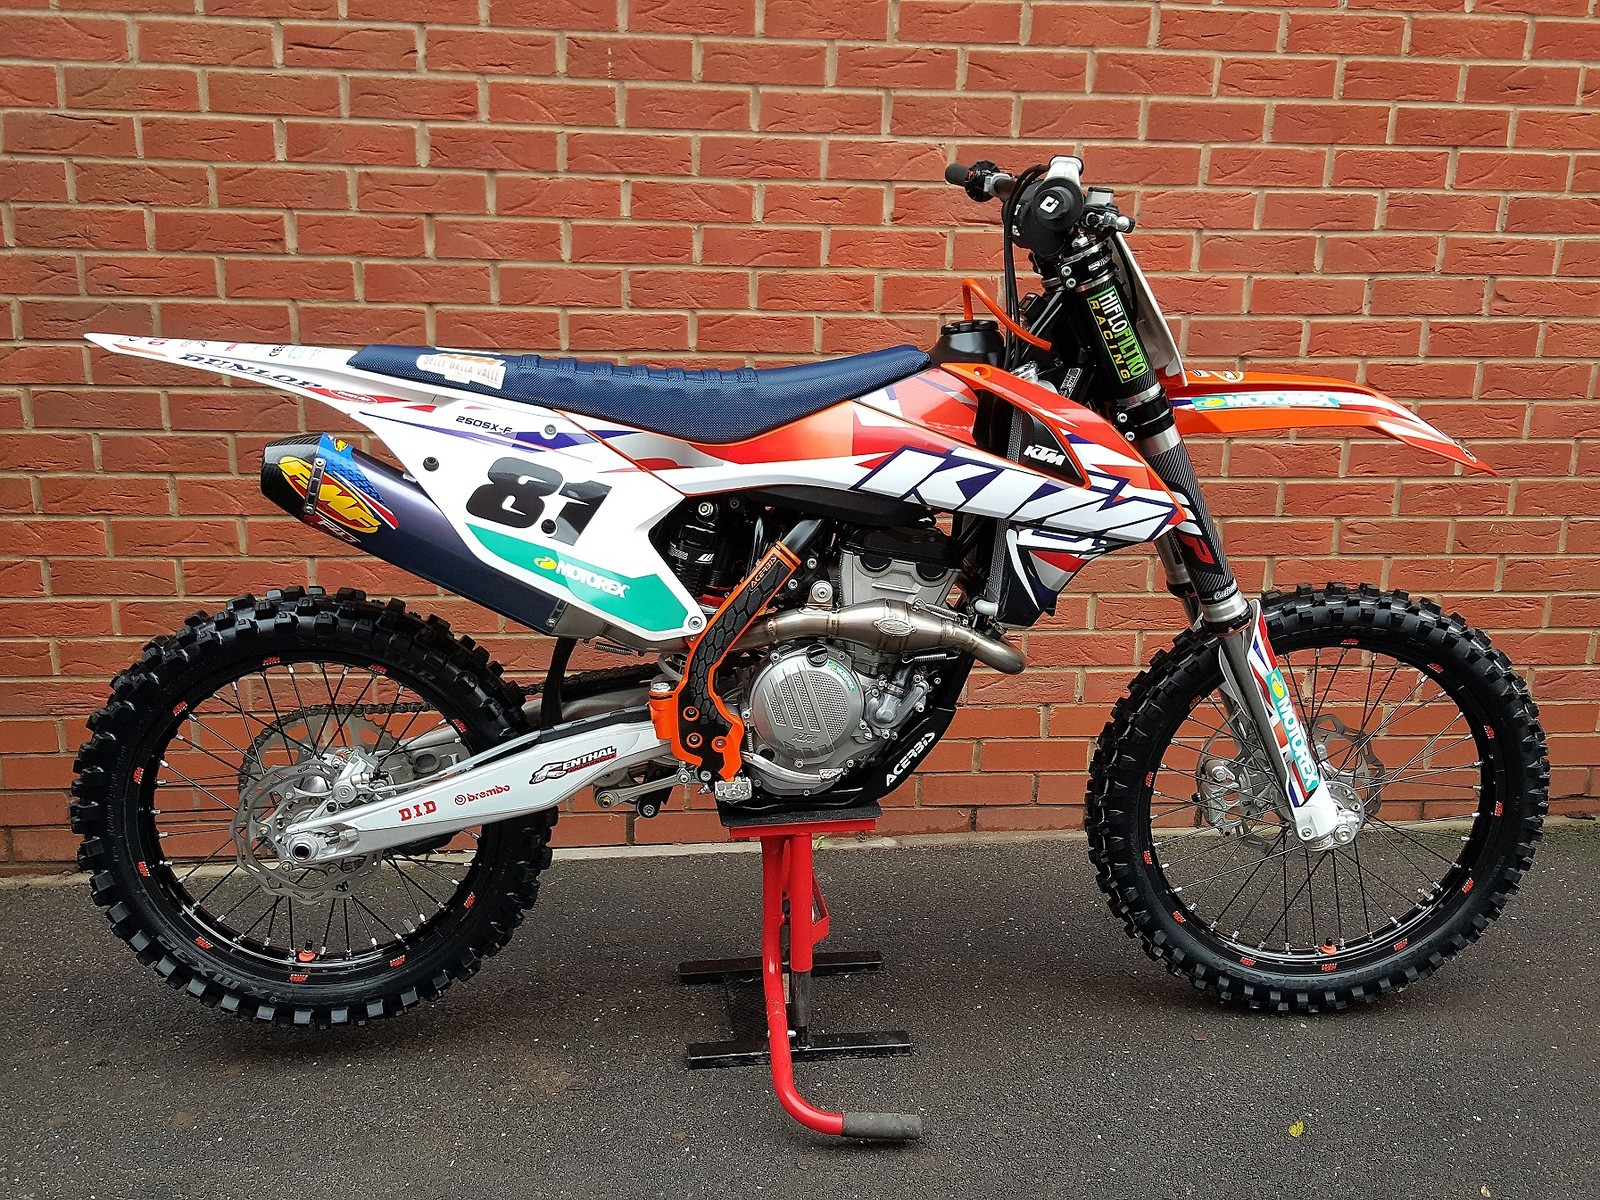 Permalink to Ktm Motorcycles